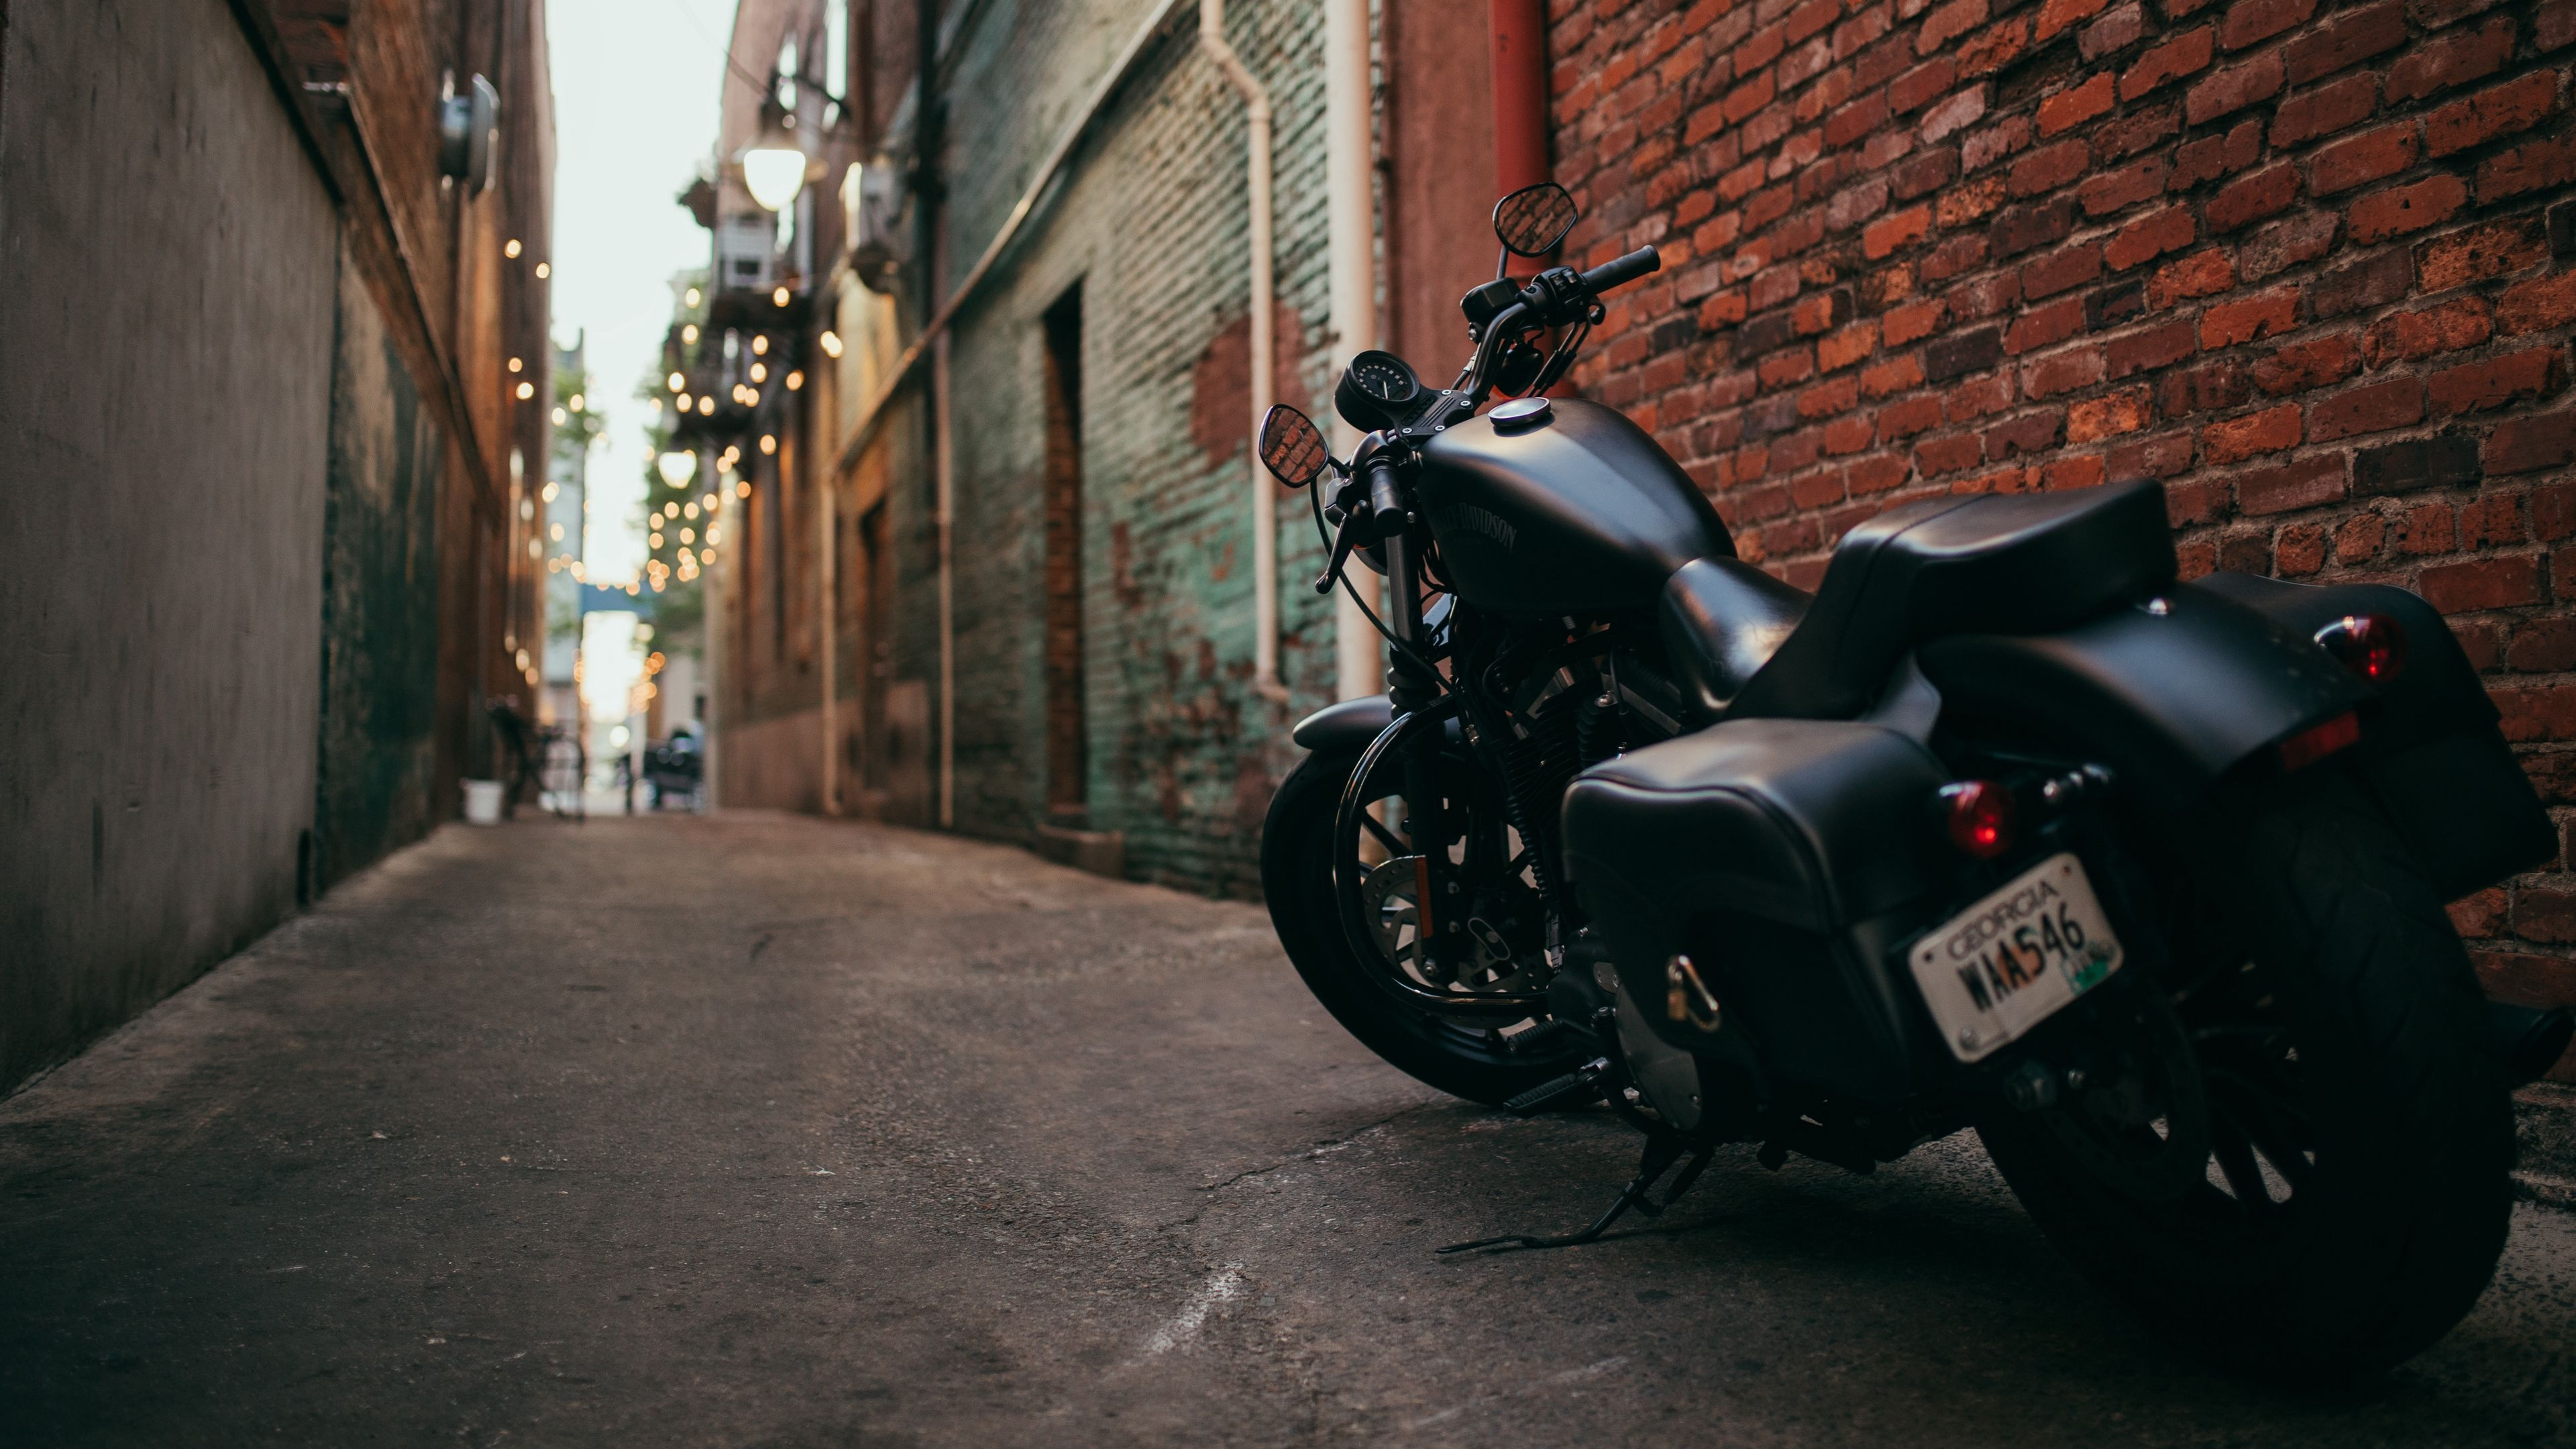 Bike Motorcycle Side View Yard 4k 4k Hd Wallpapers